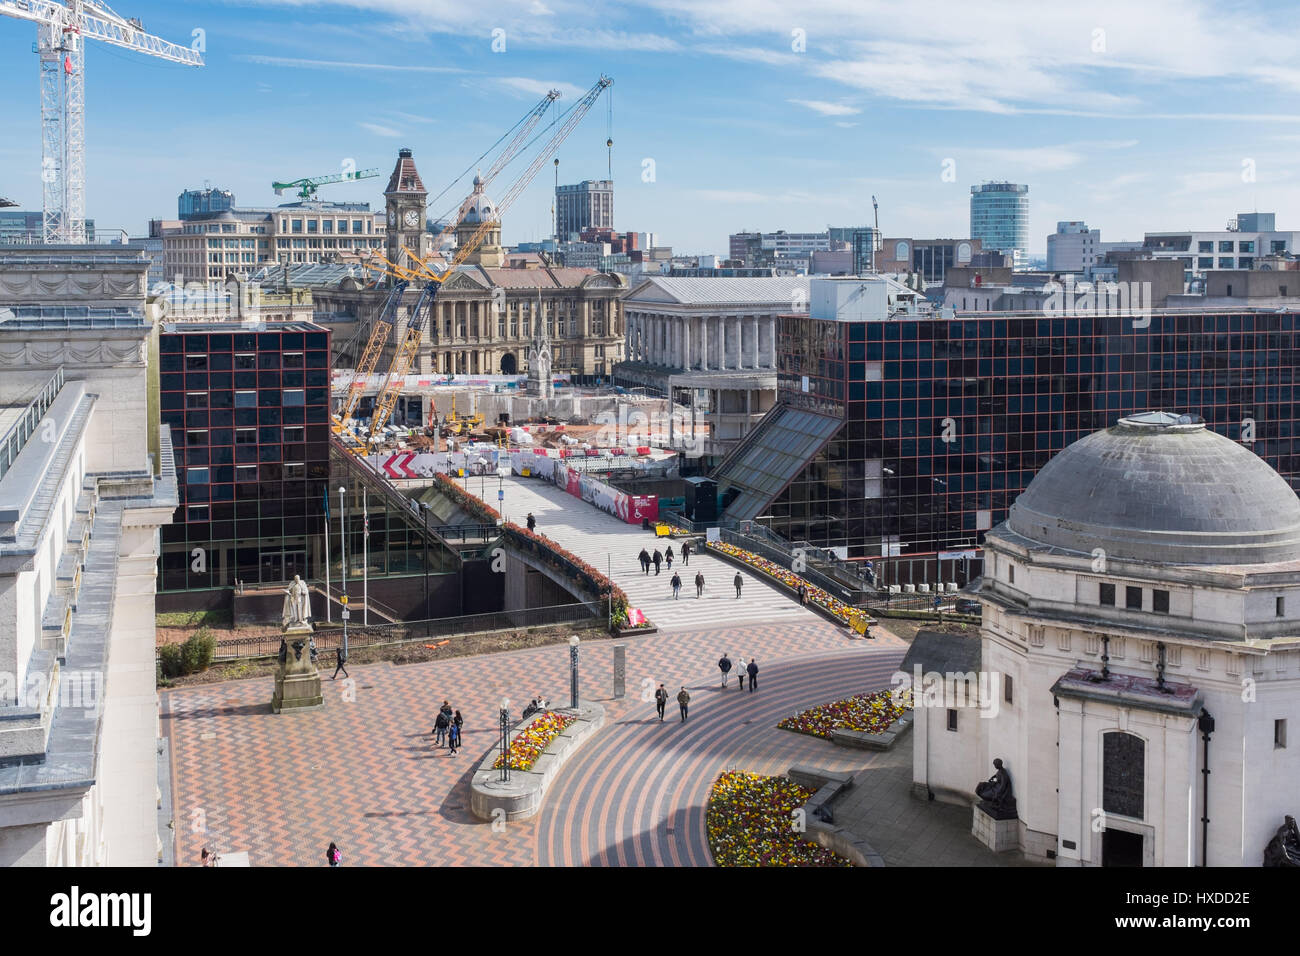 View of construction work on the site of the old Birmingham Central Library at Paradise circus - Stock Image